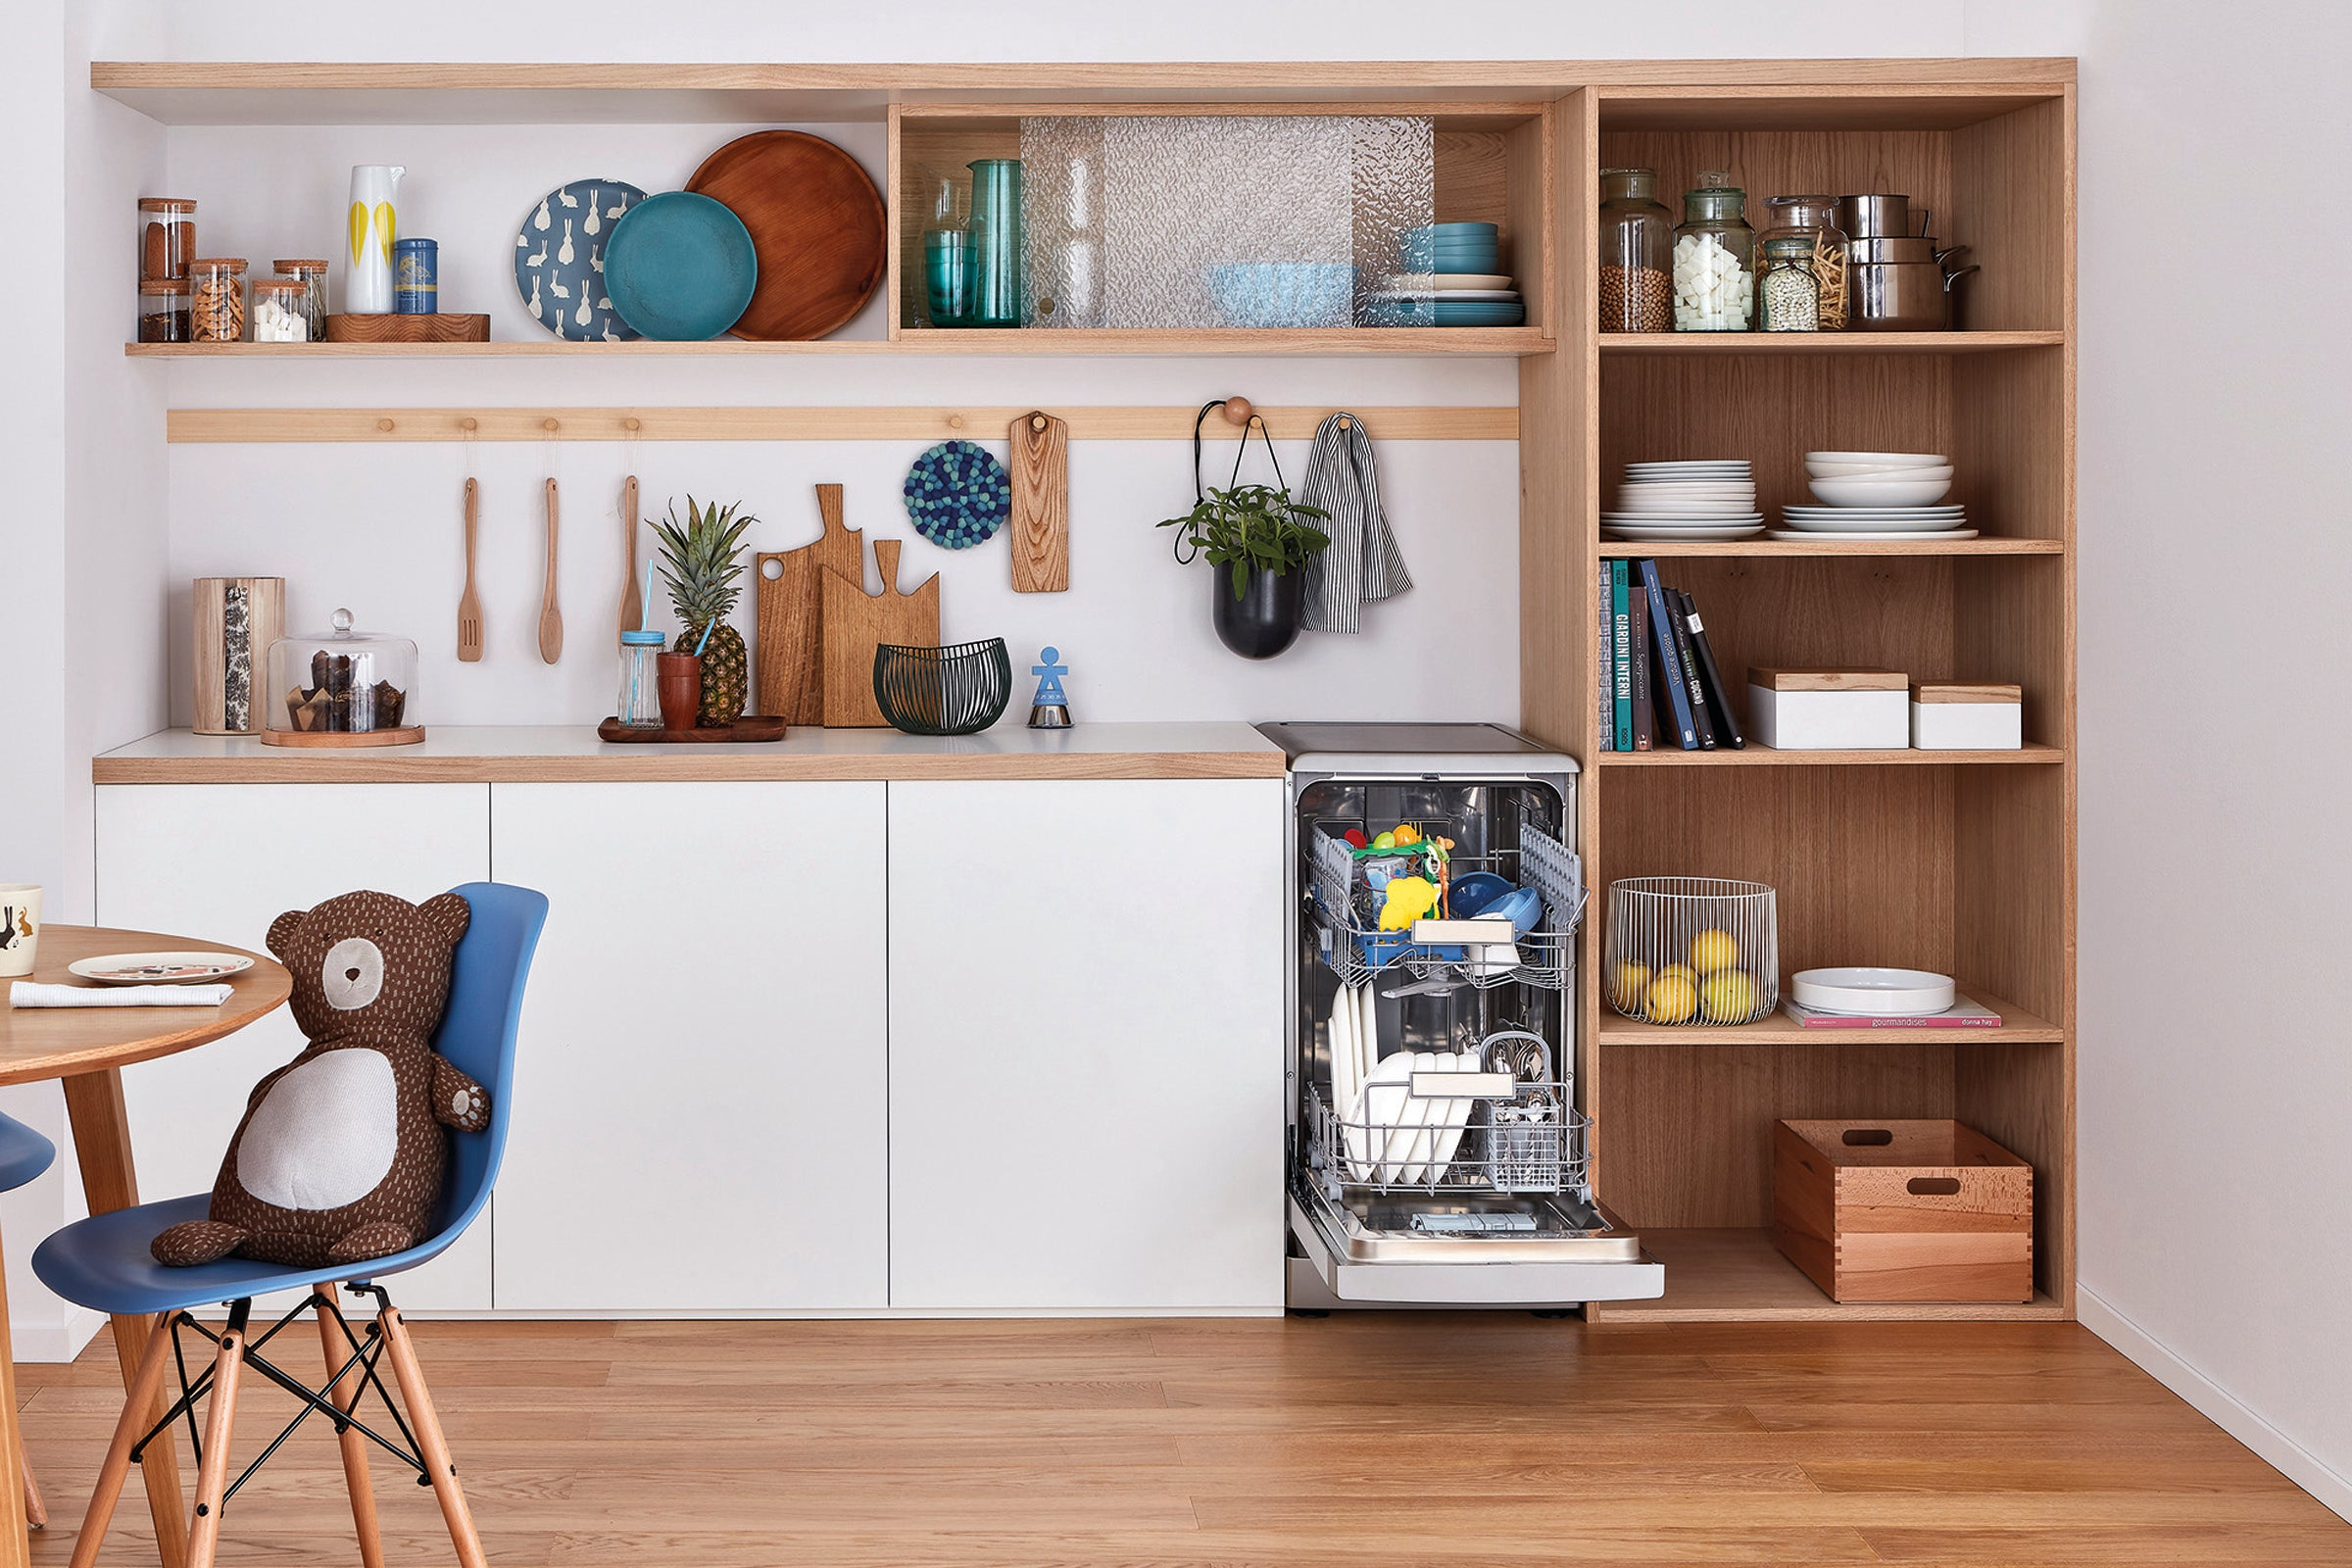 Best Dishwashers 2019: Clean dishes and cutlery